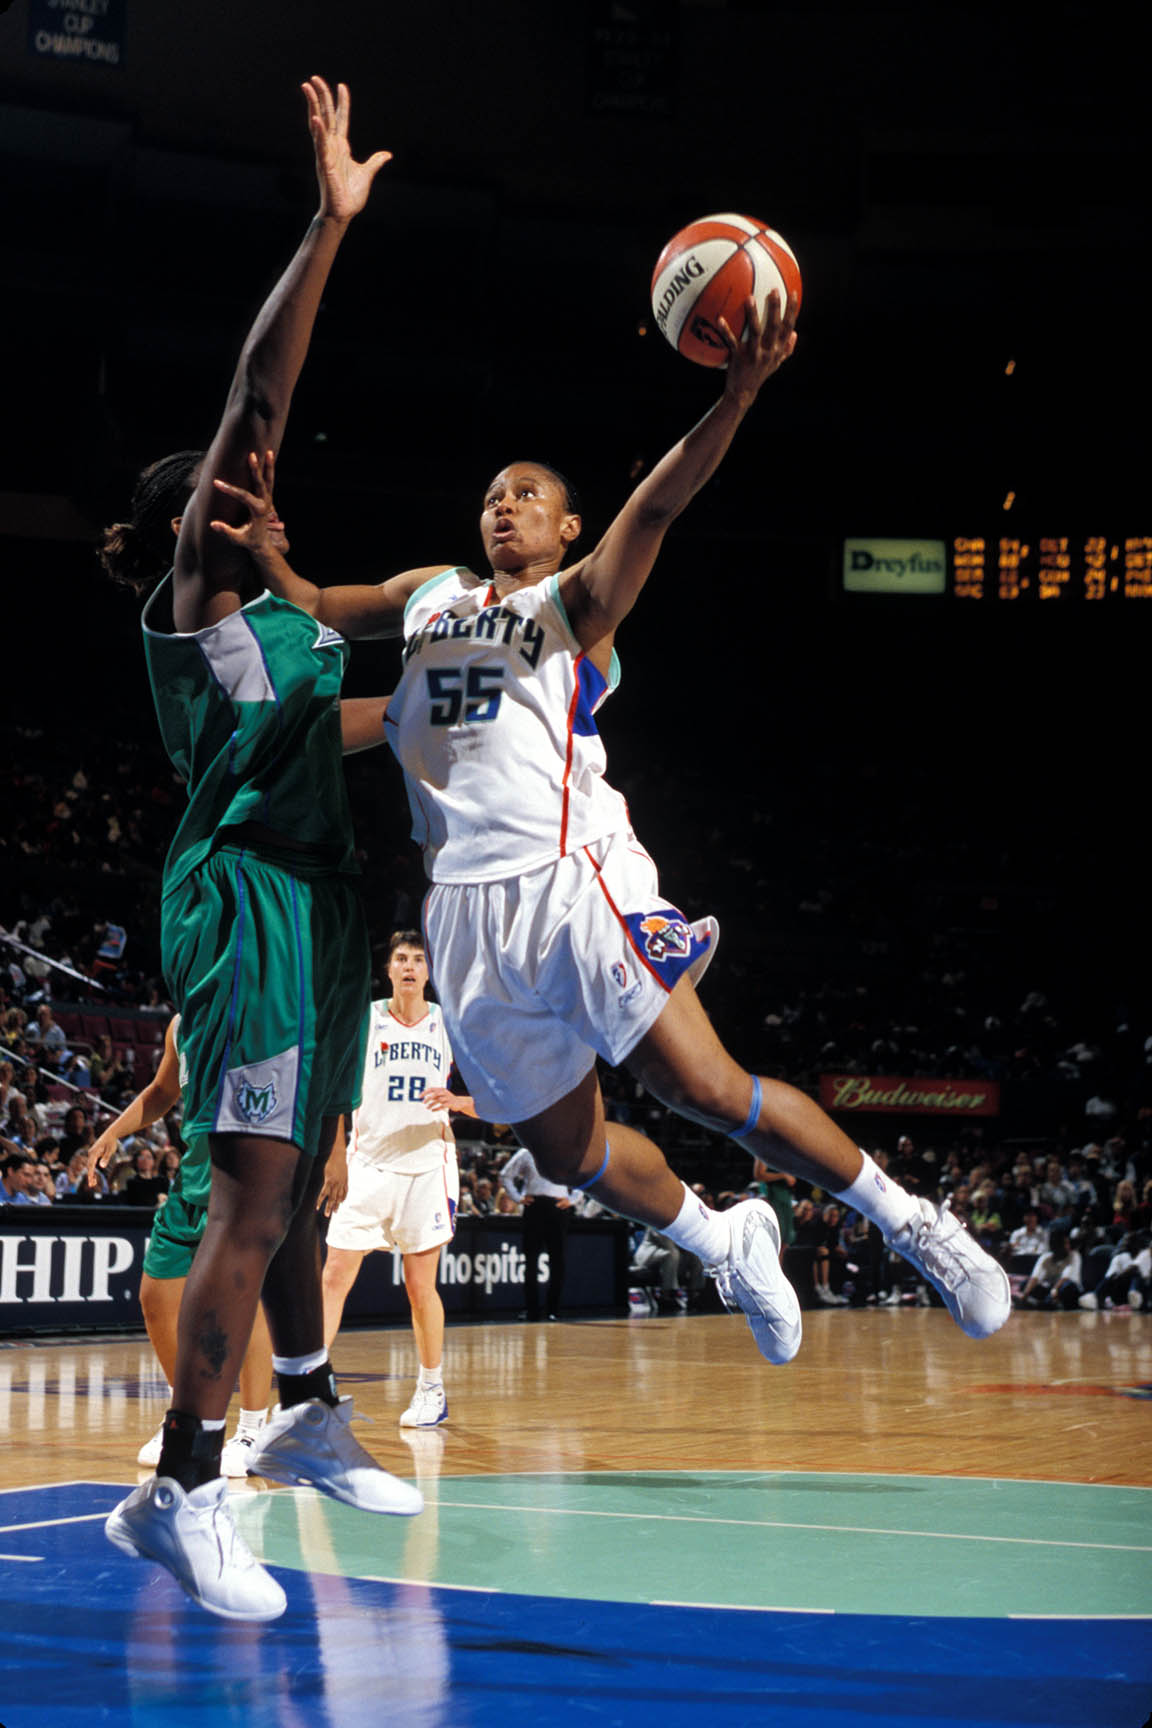 07/15/04, Liberty v. Lynx, Vickie Johnson.